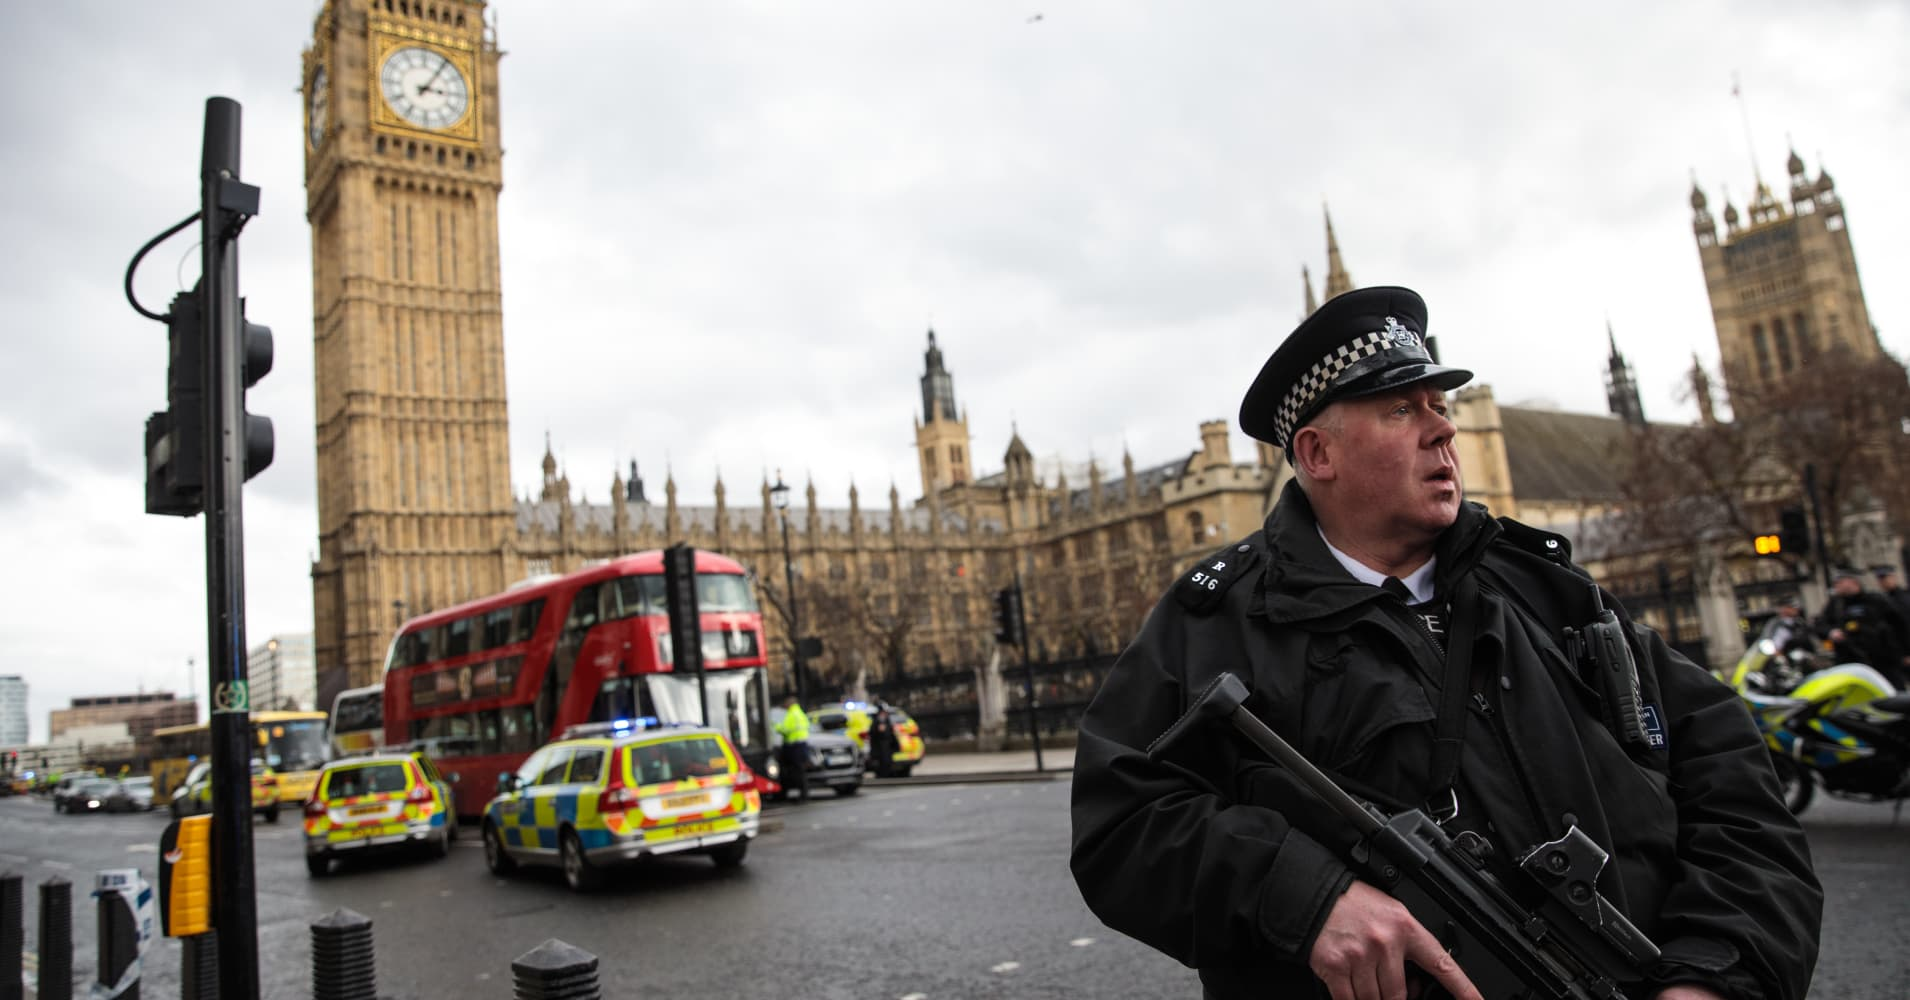 Scenes from the UK Parliament attack